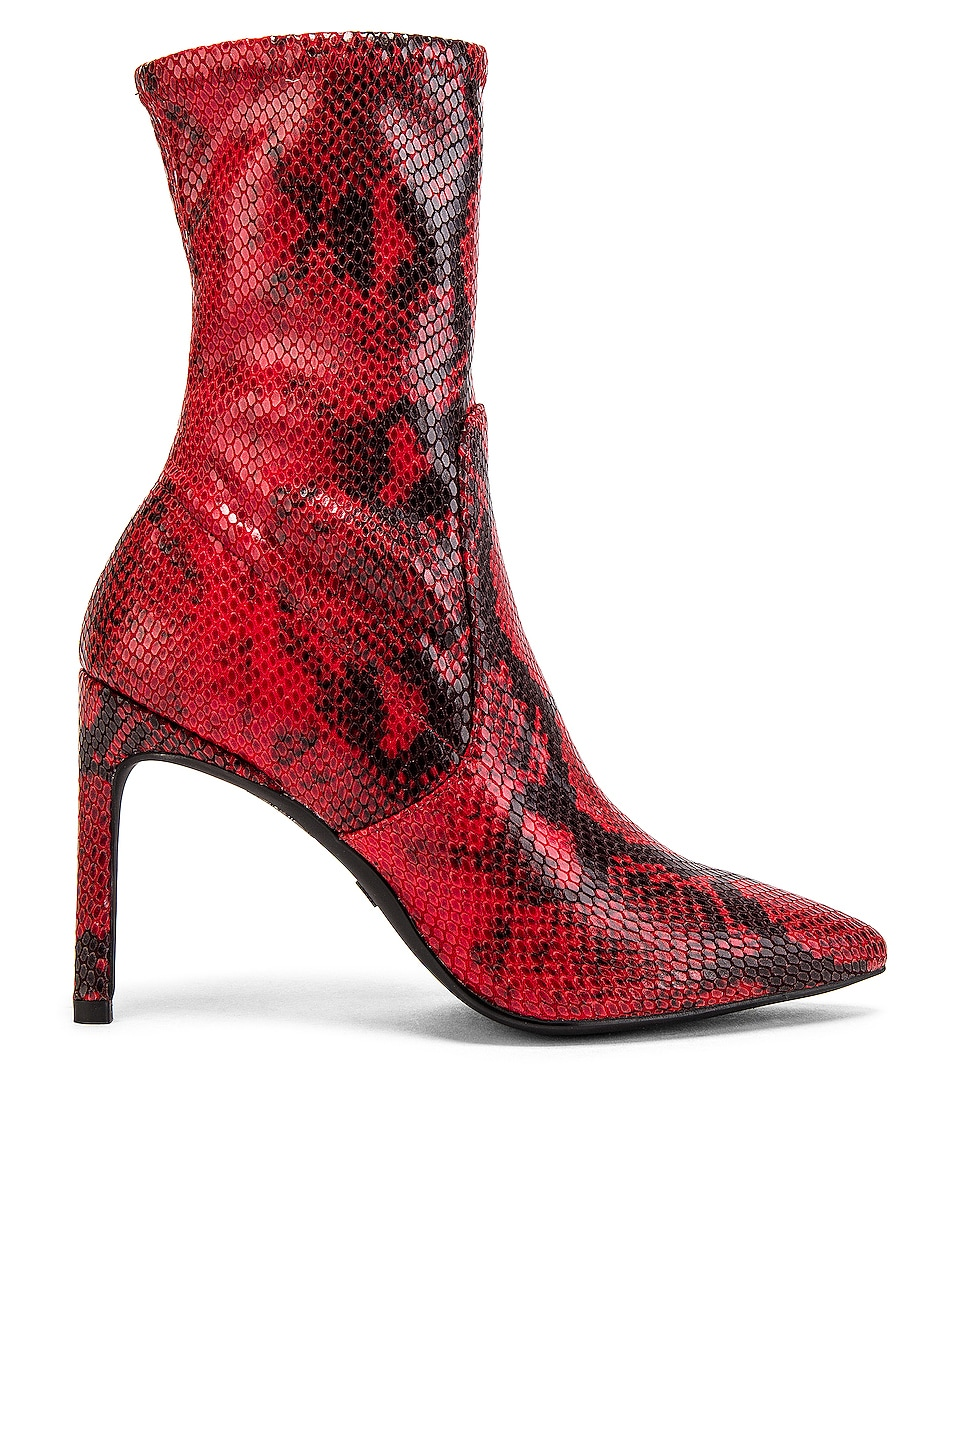 Stuart Weitzman Wren Bootie in Follow Me Red